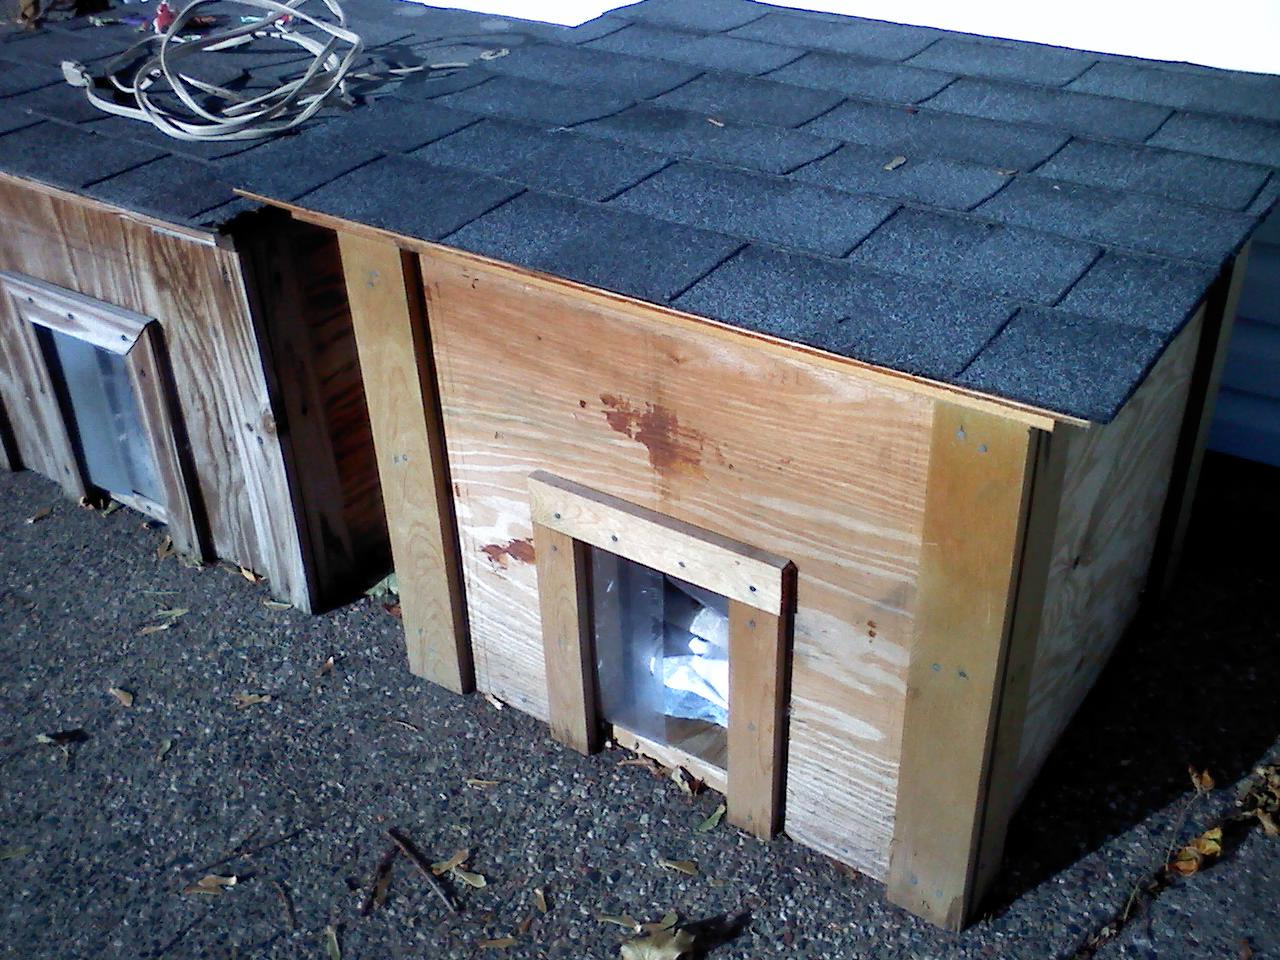 ... outdoor cat shelter displaying 20 images for outdoor cat shelter